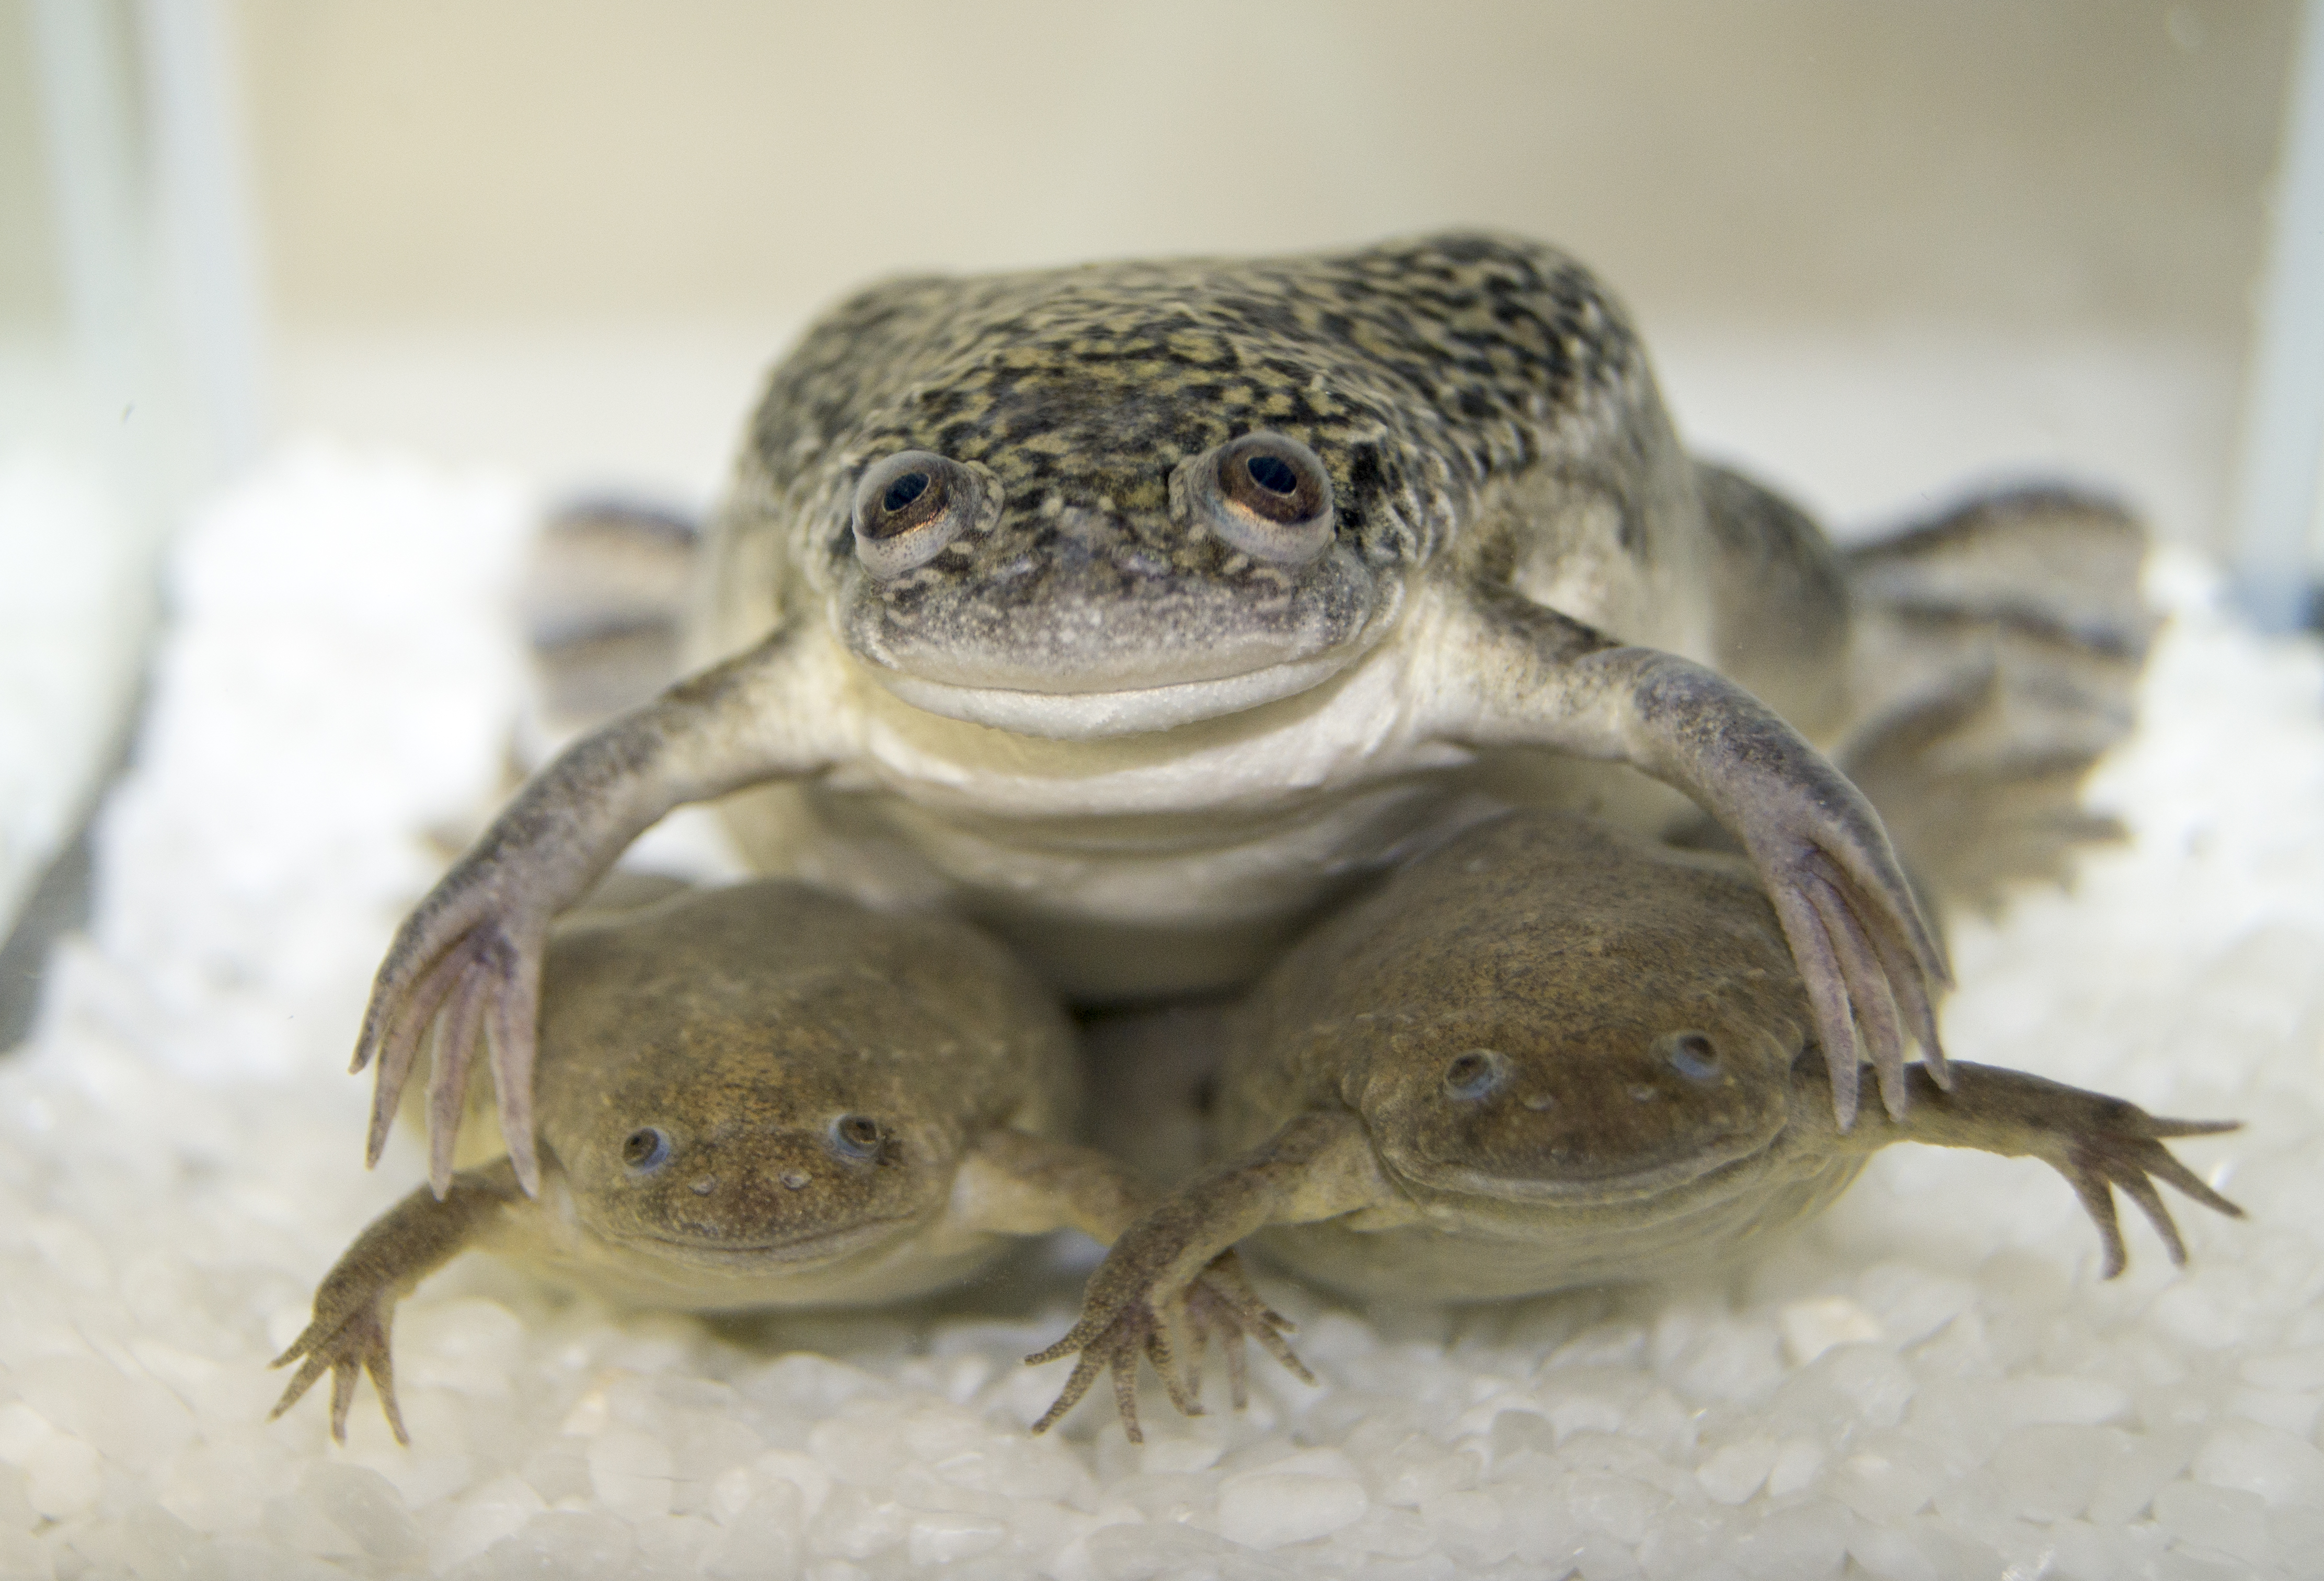 The African Clawed Frog <i>X. laevis</i> and the Western Clawed Frog <i>X. tropicalis</i>